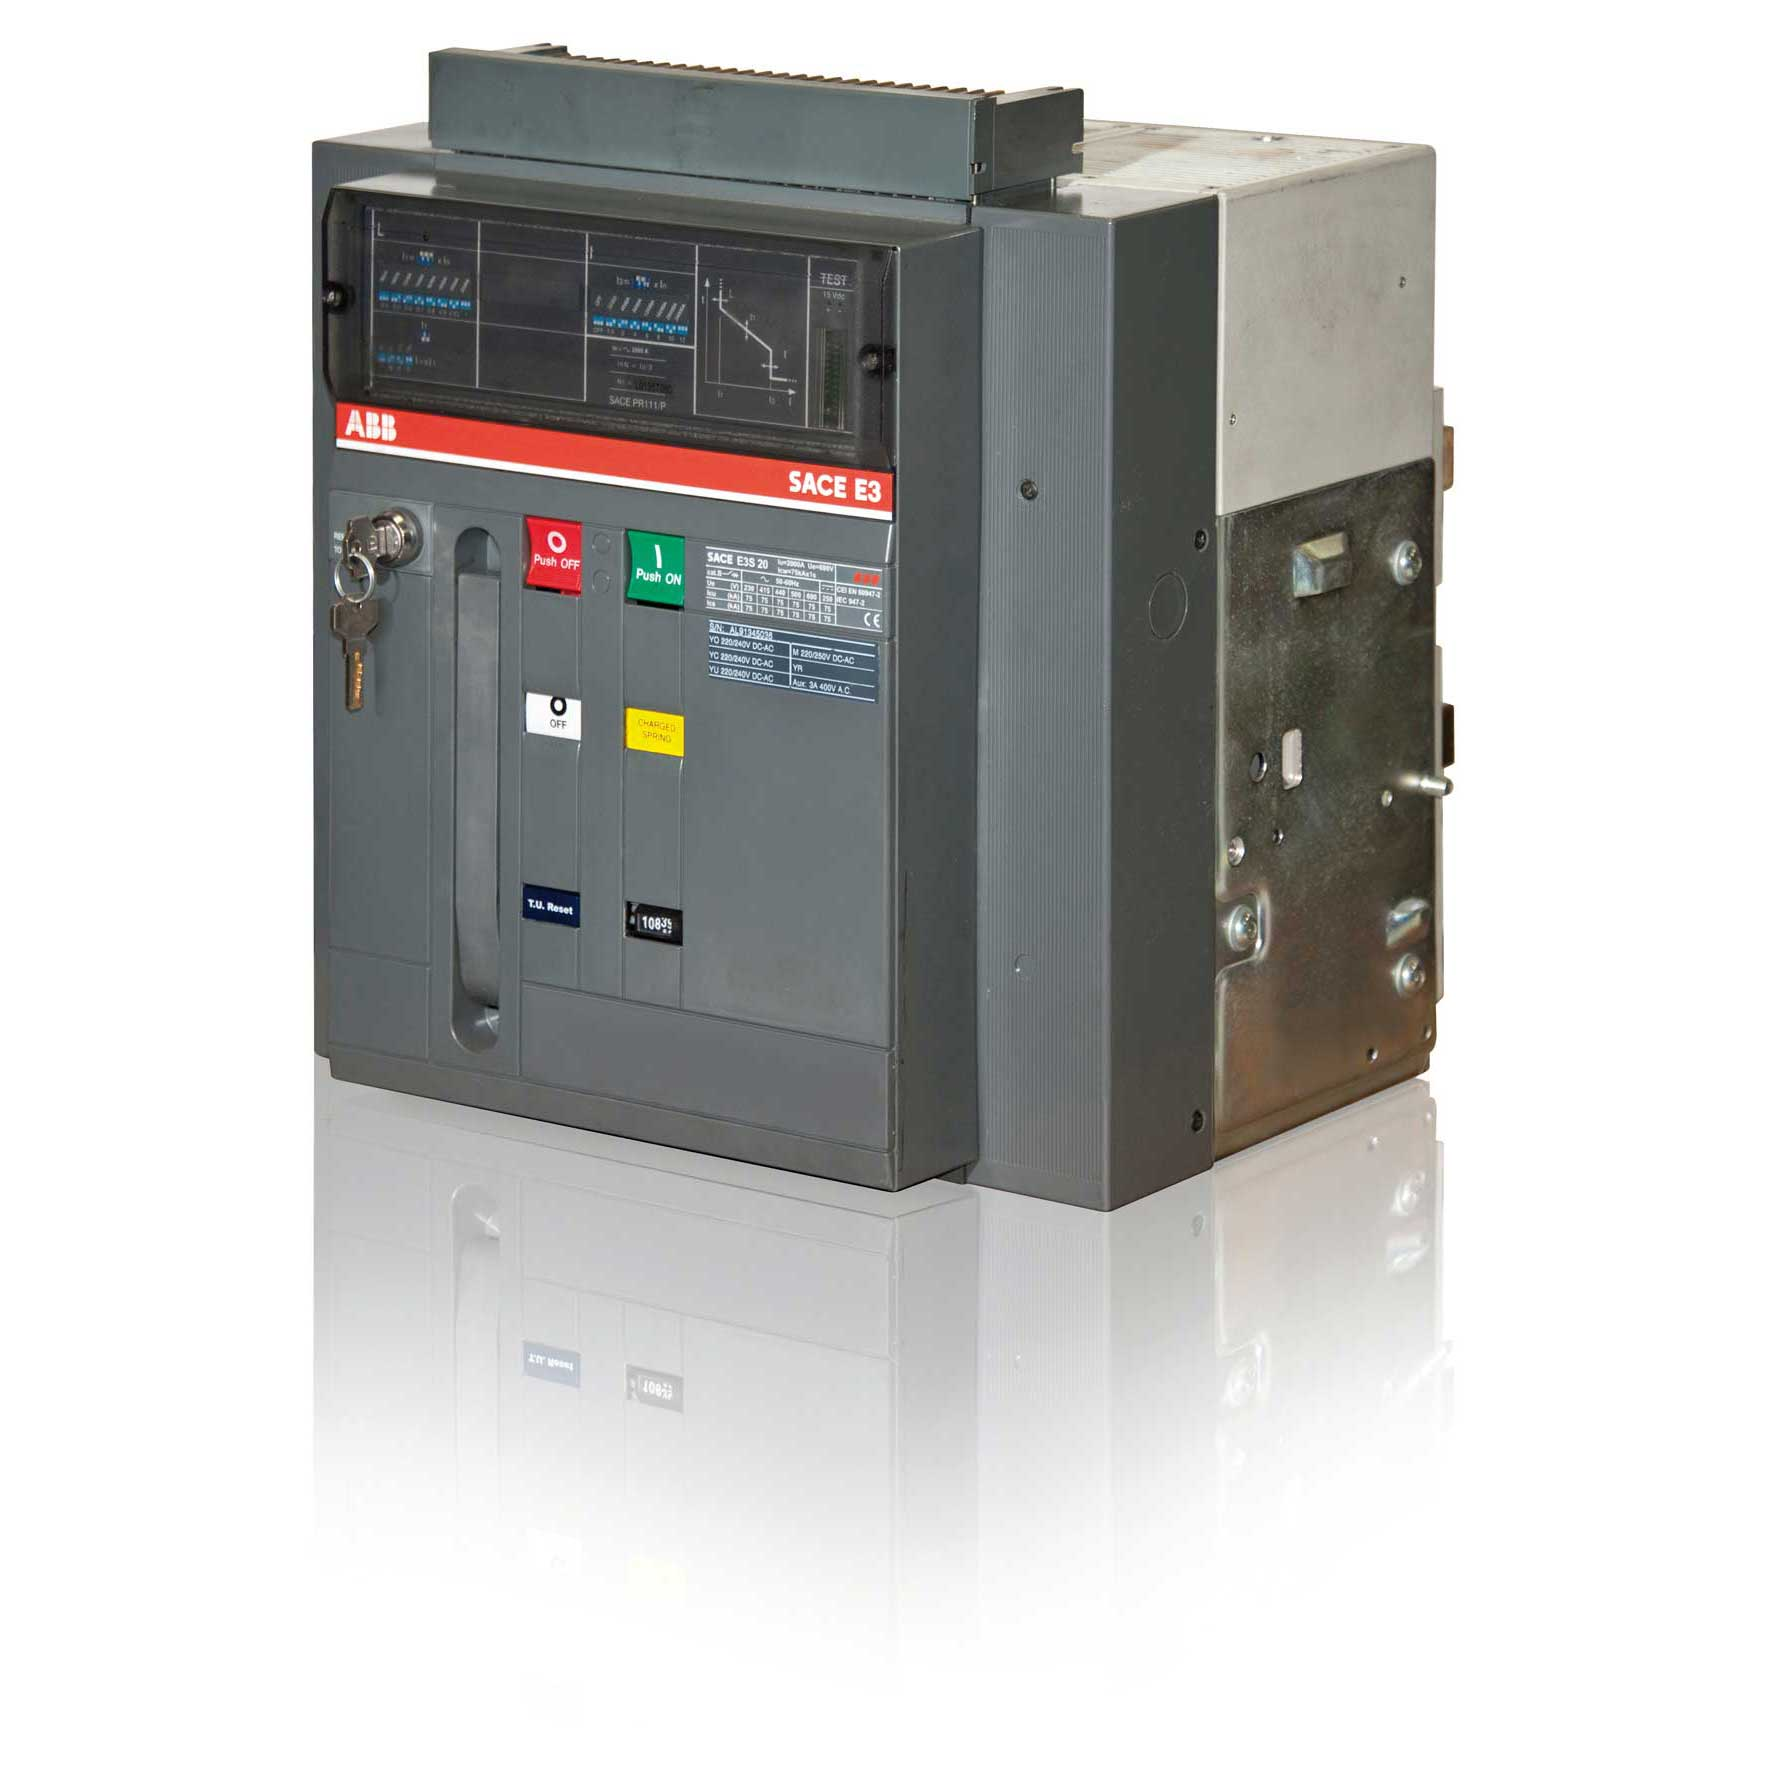 hight resolution of buy abb 1sda055746r1 emax low voltage air circuit breaker 1250a 3p online at rs buy electricals acb only on supplybasics india